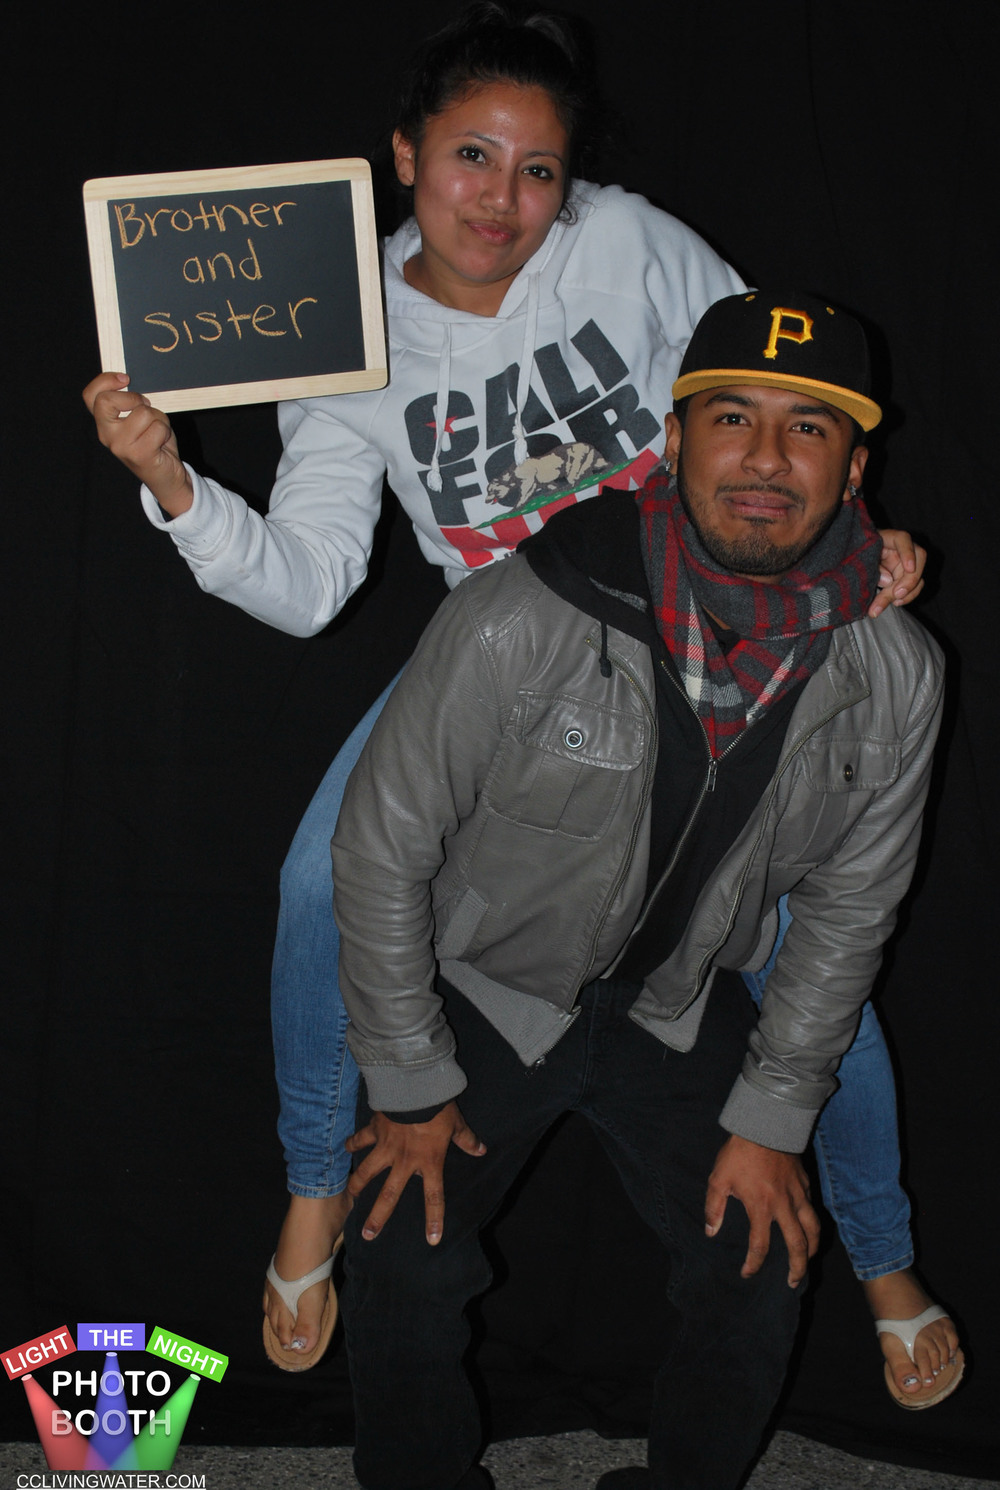 2014-10 - Light The Night Photo Booth (36) copy.jpg